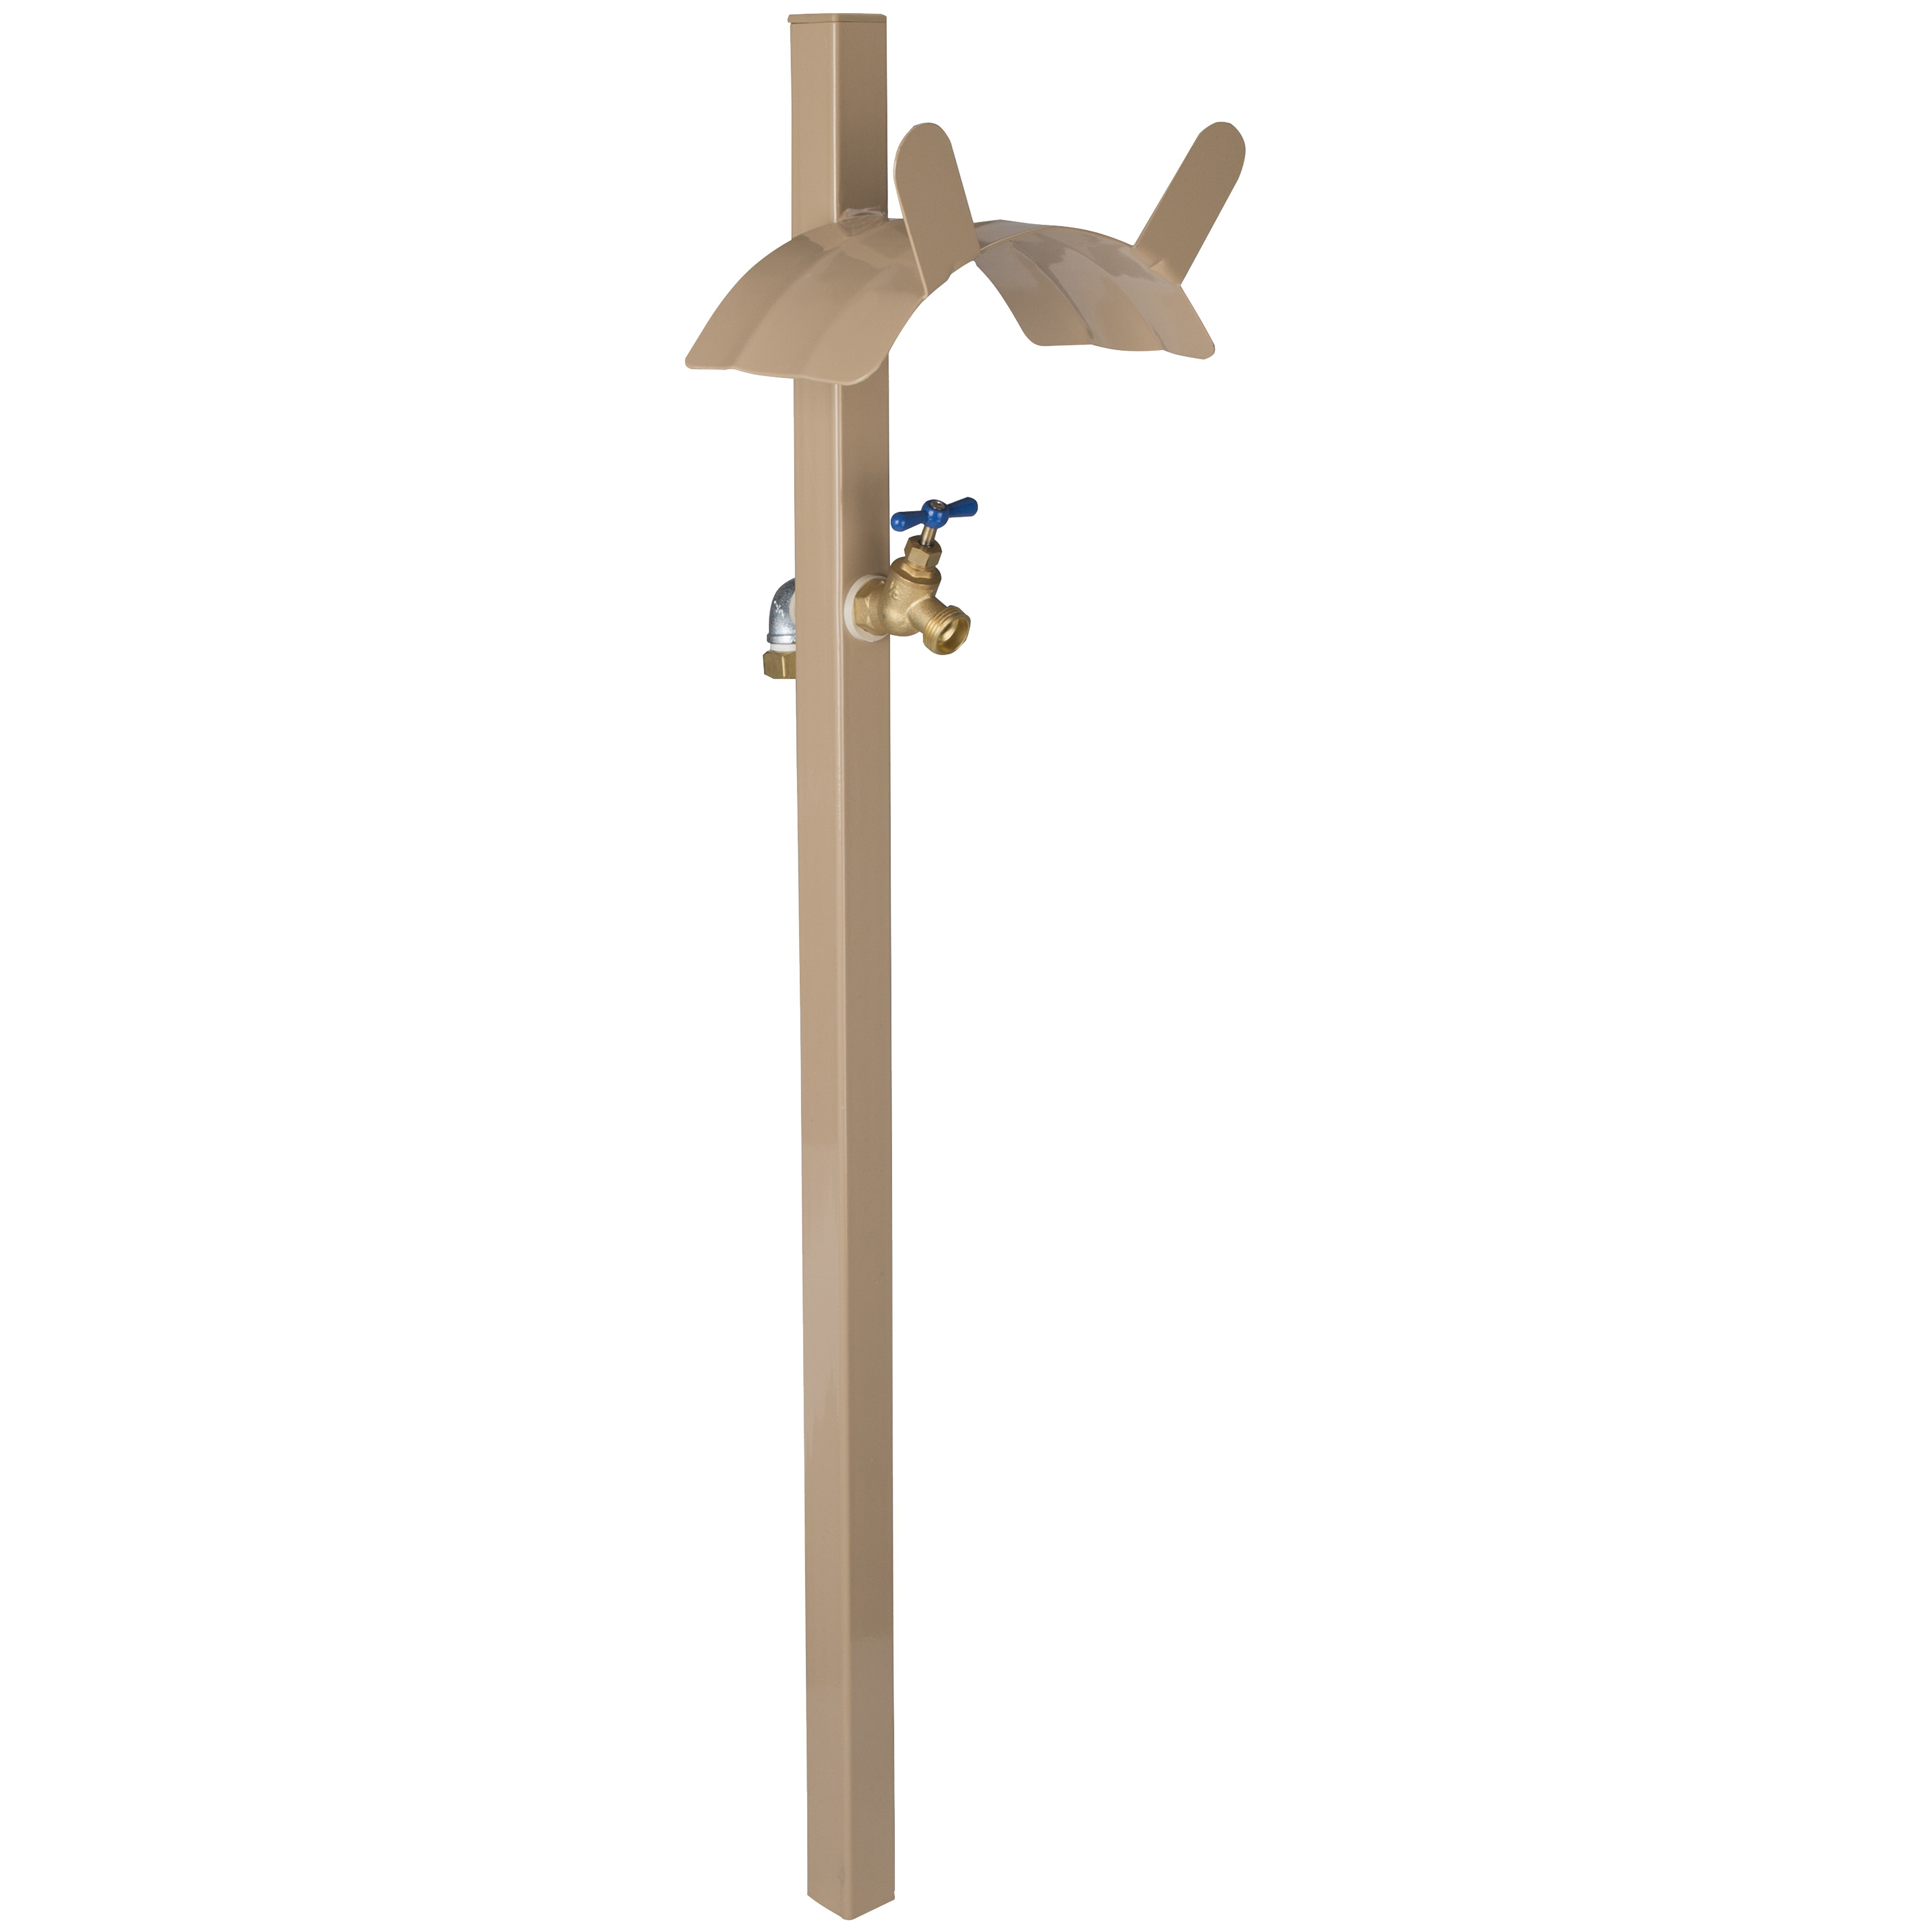 Picture of Landscapers Select HH-693 Hose Stand, 150 ft Capacity, Steel, Tan, Powder-Coated, Stake Mounting